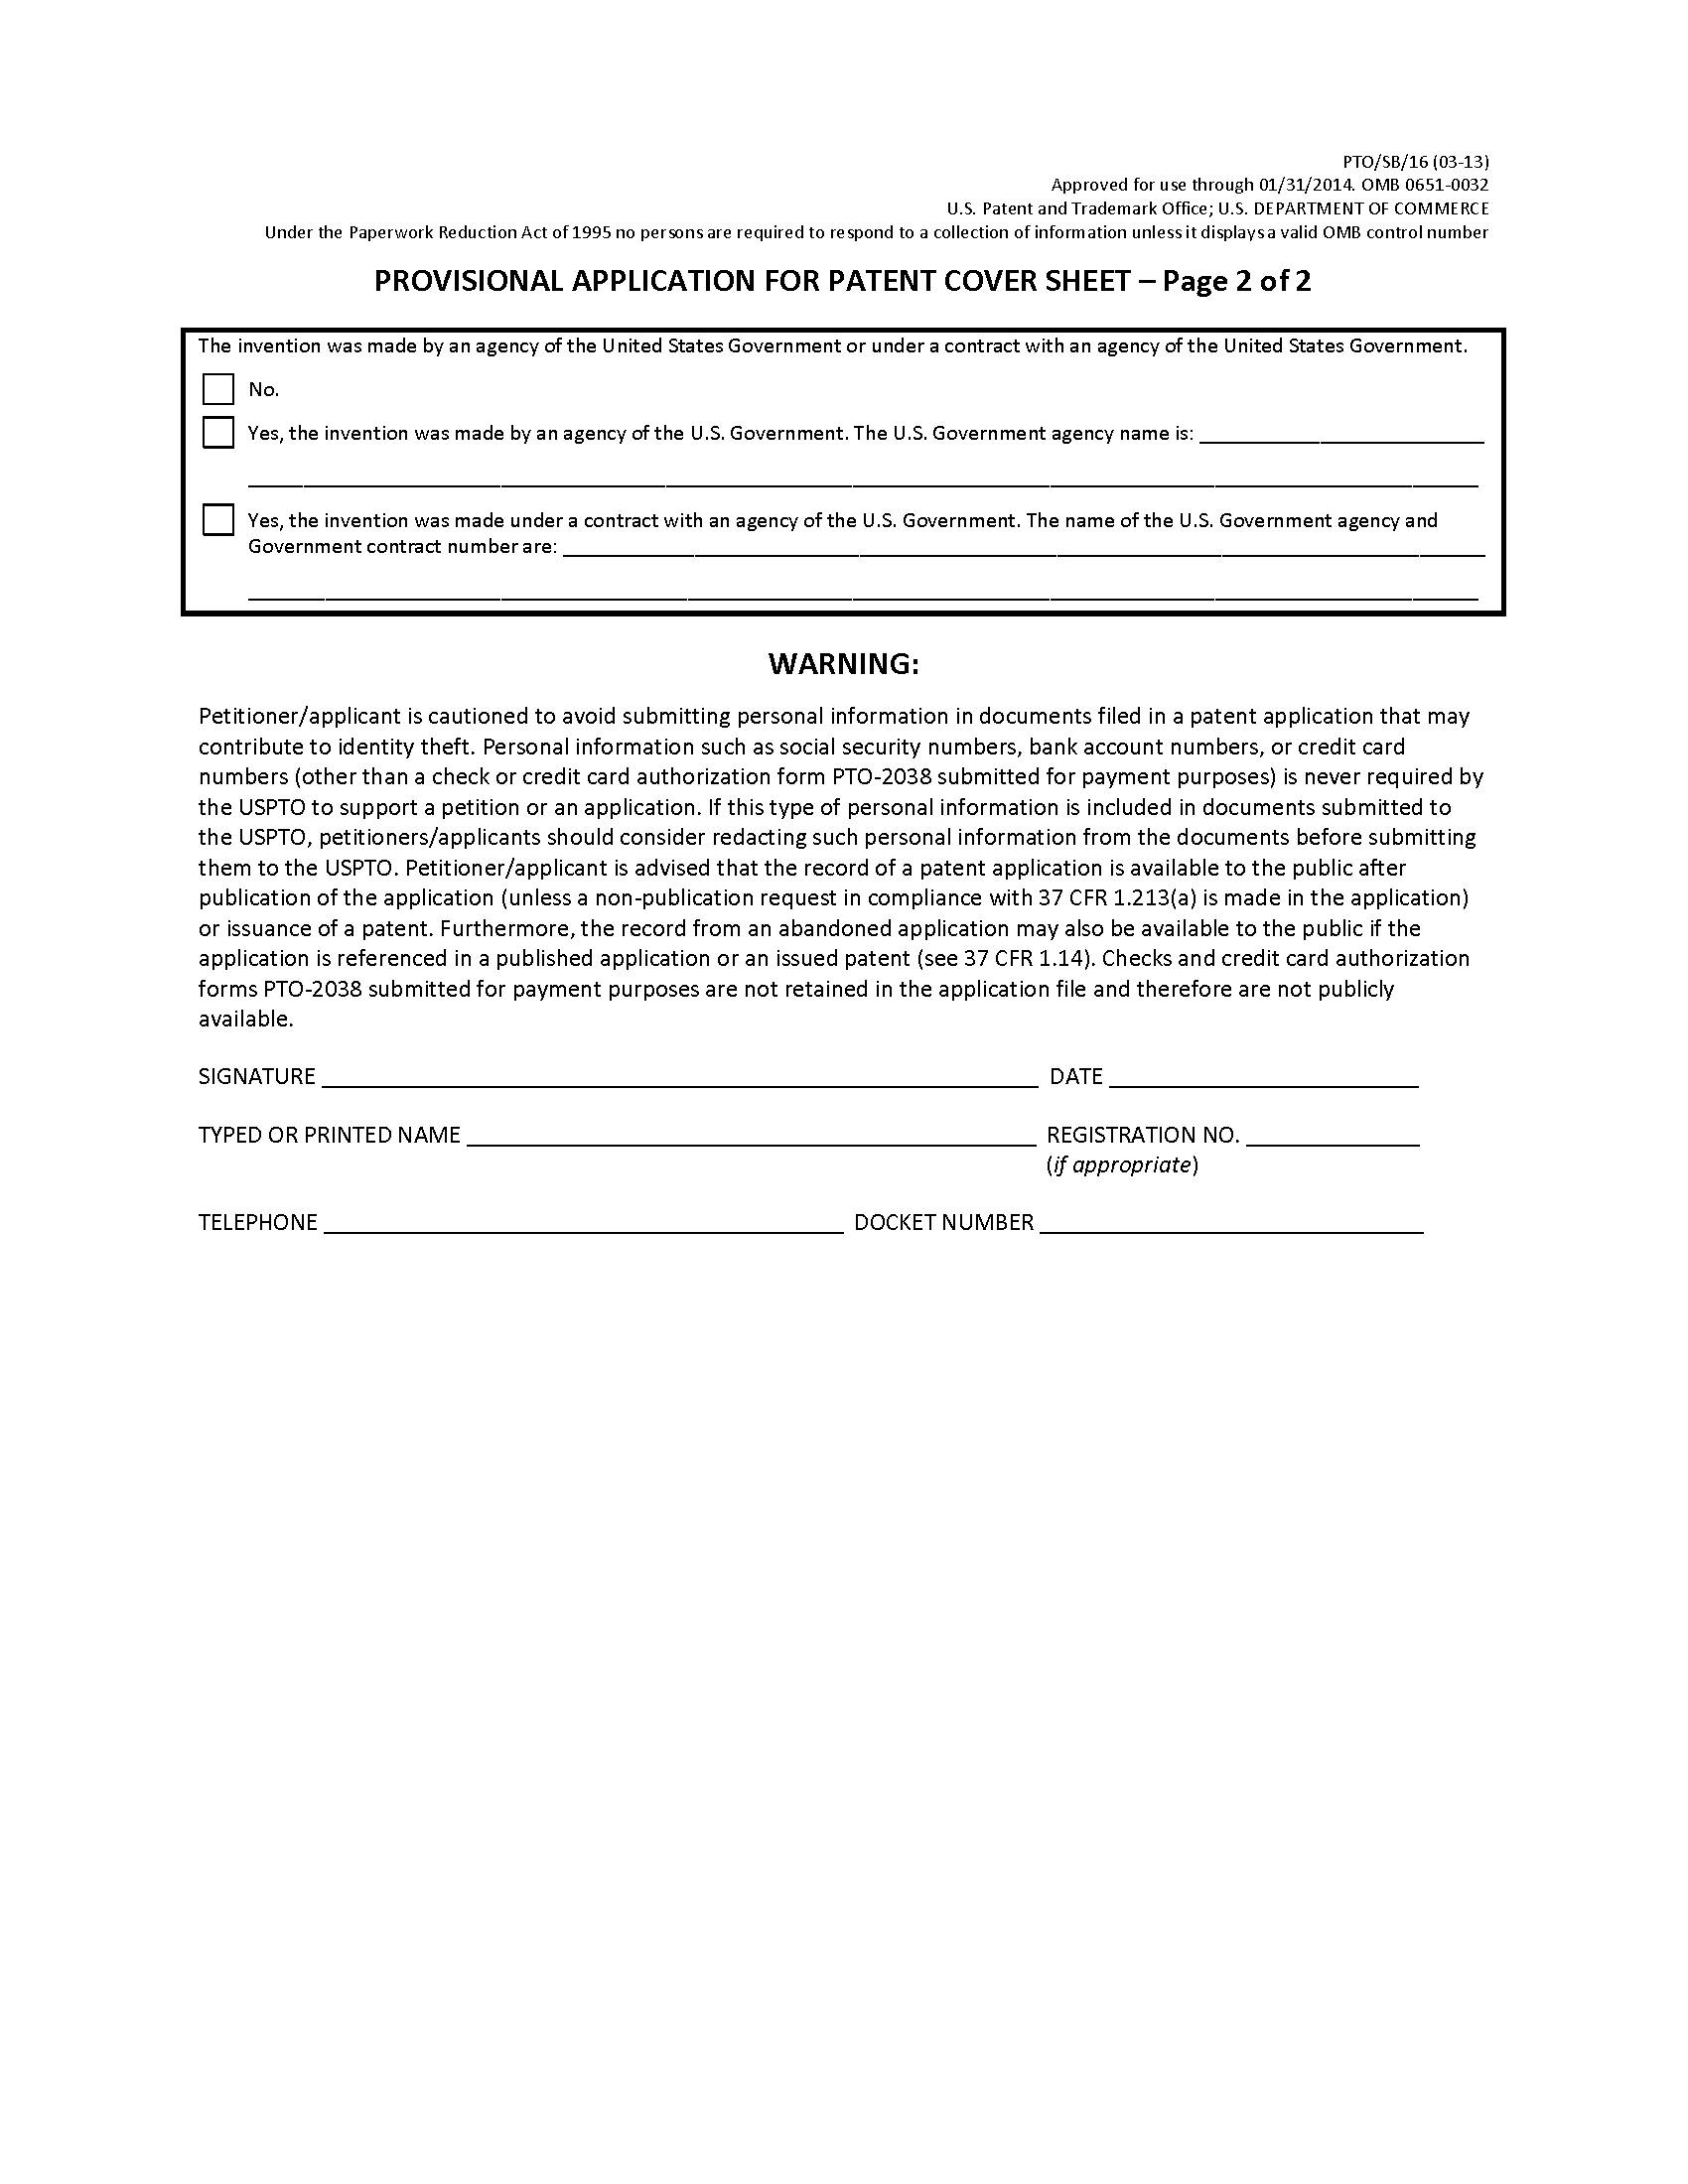 Provisional Patent Application Uspto